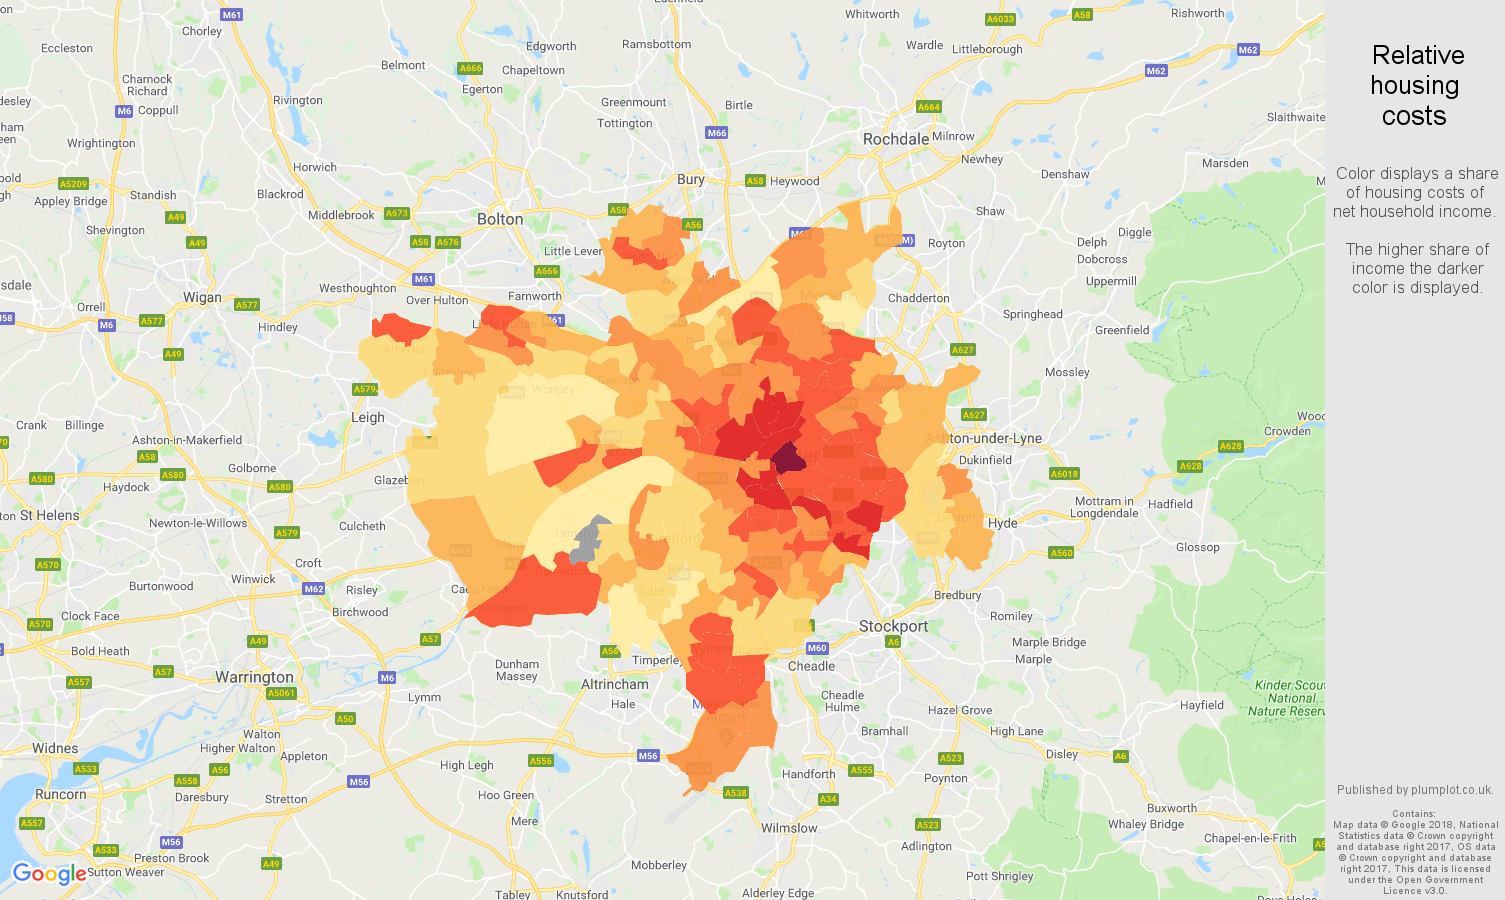 Manchester relative housing costs map